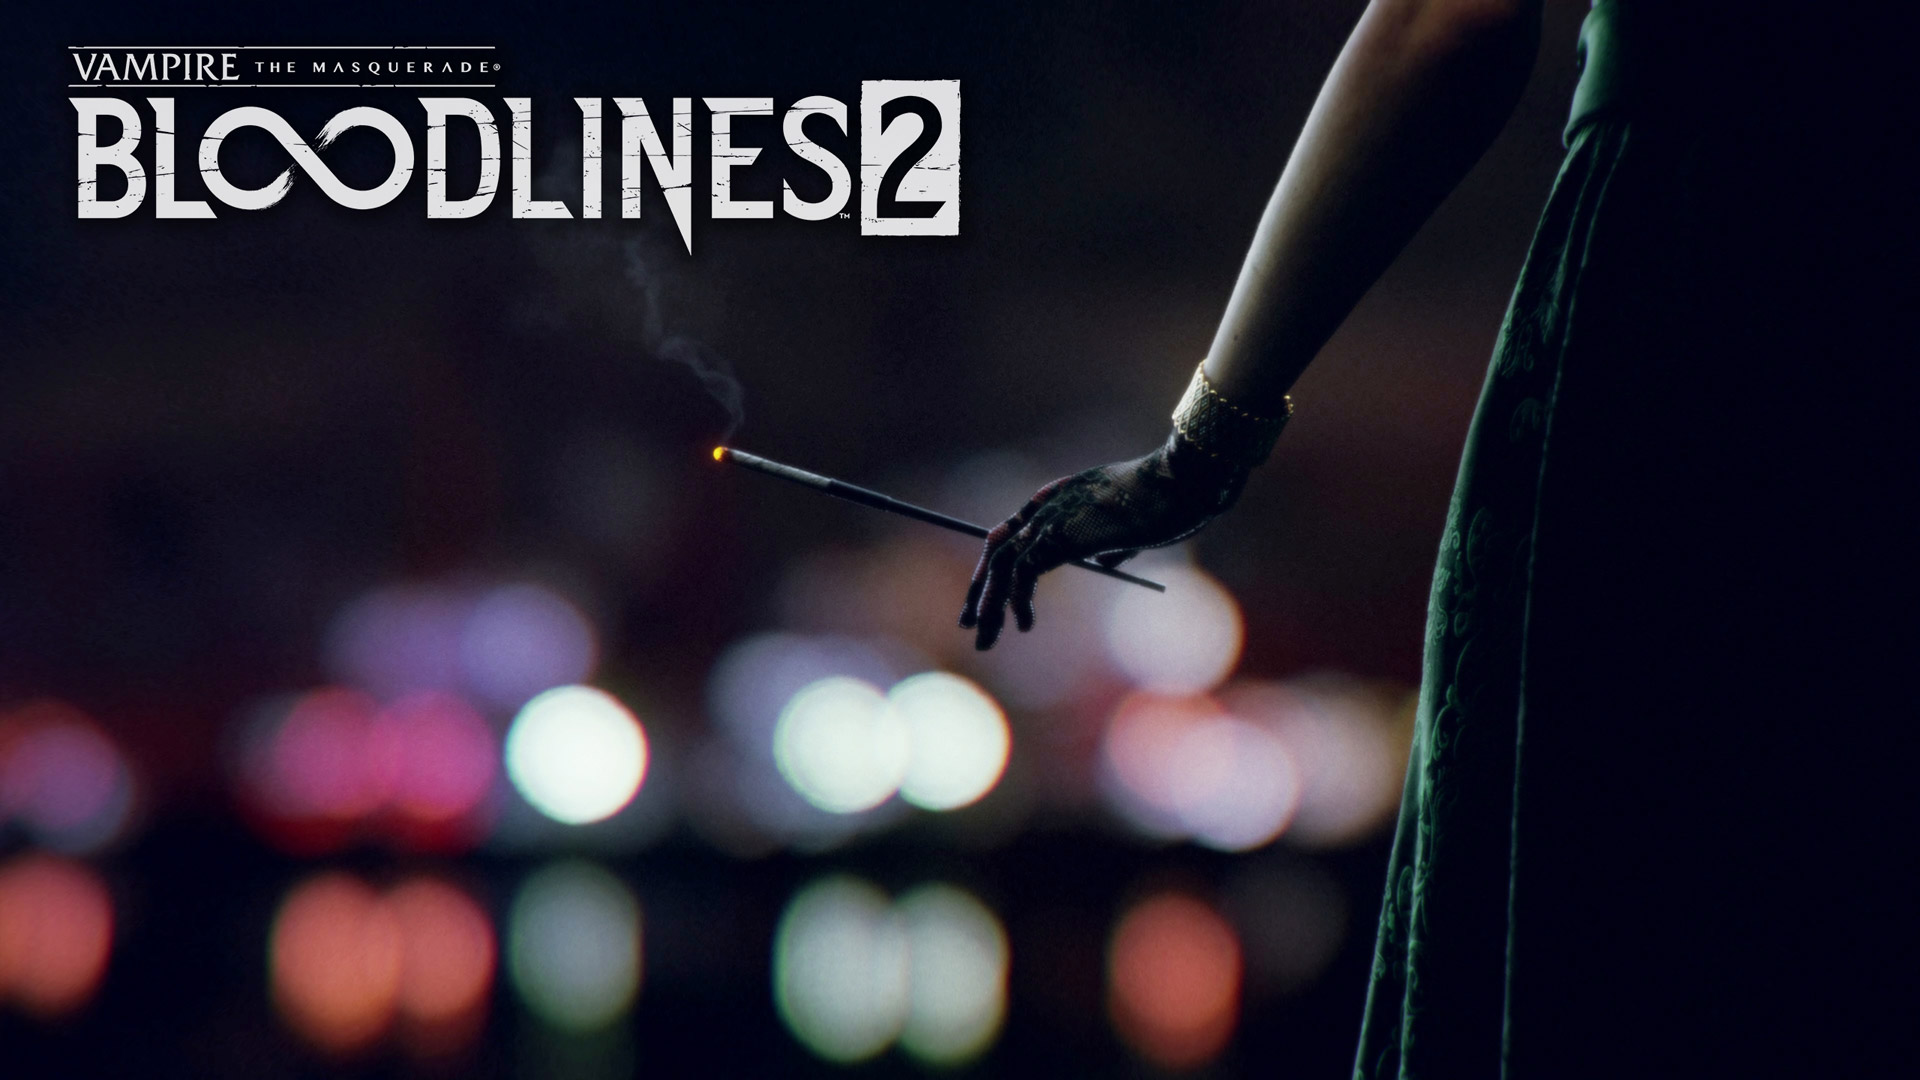 Free Vampire: The Masquerade - Bloodlines 2 Wallpaper in 1920x1080